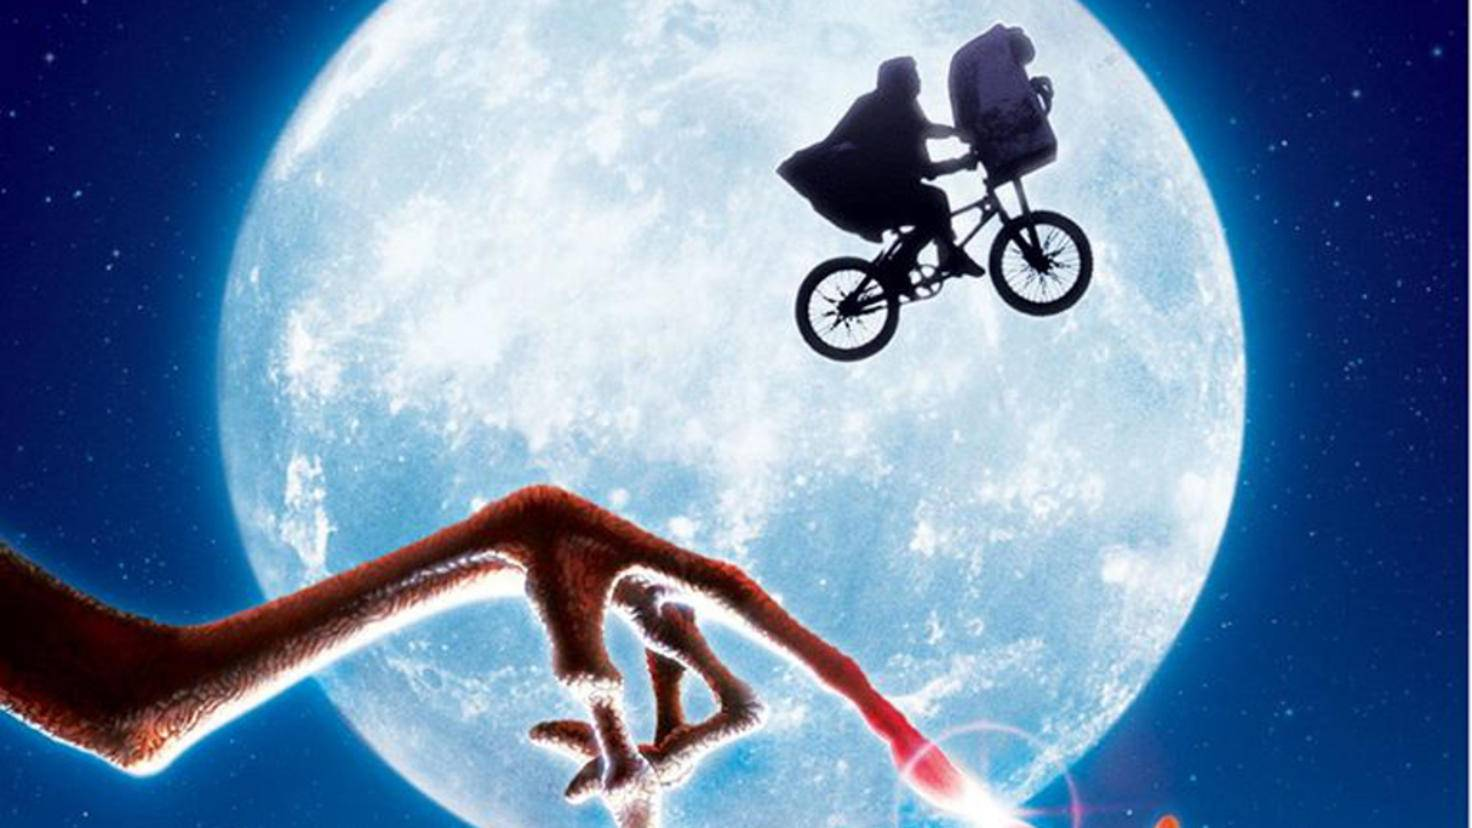 ET_Film_Facebook_E.T.TheMovie.jpg